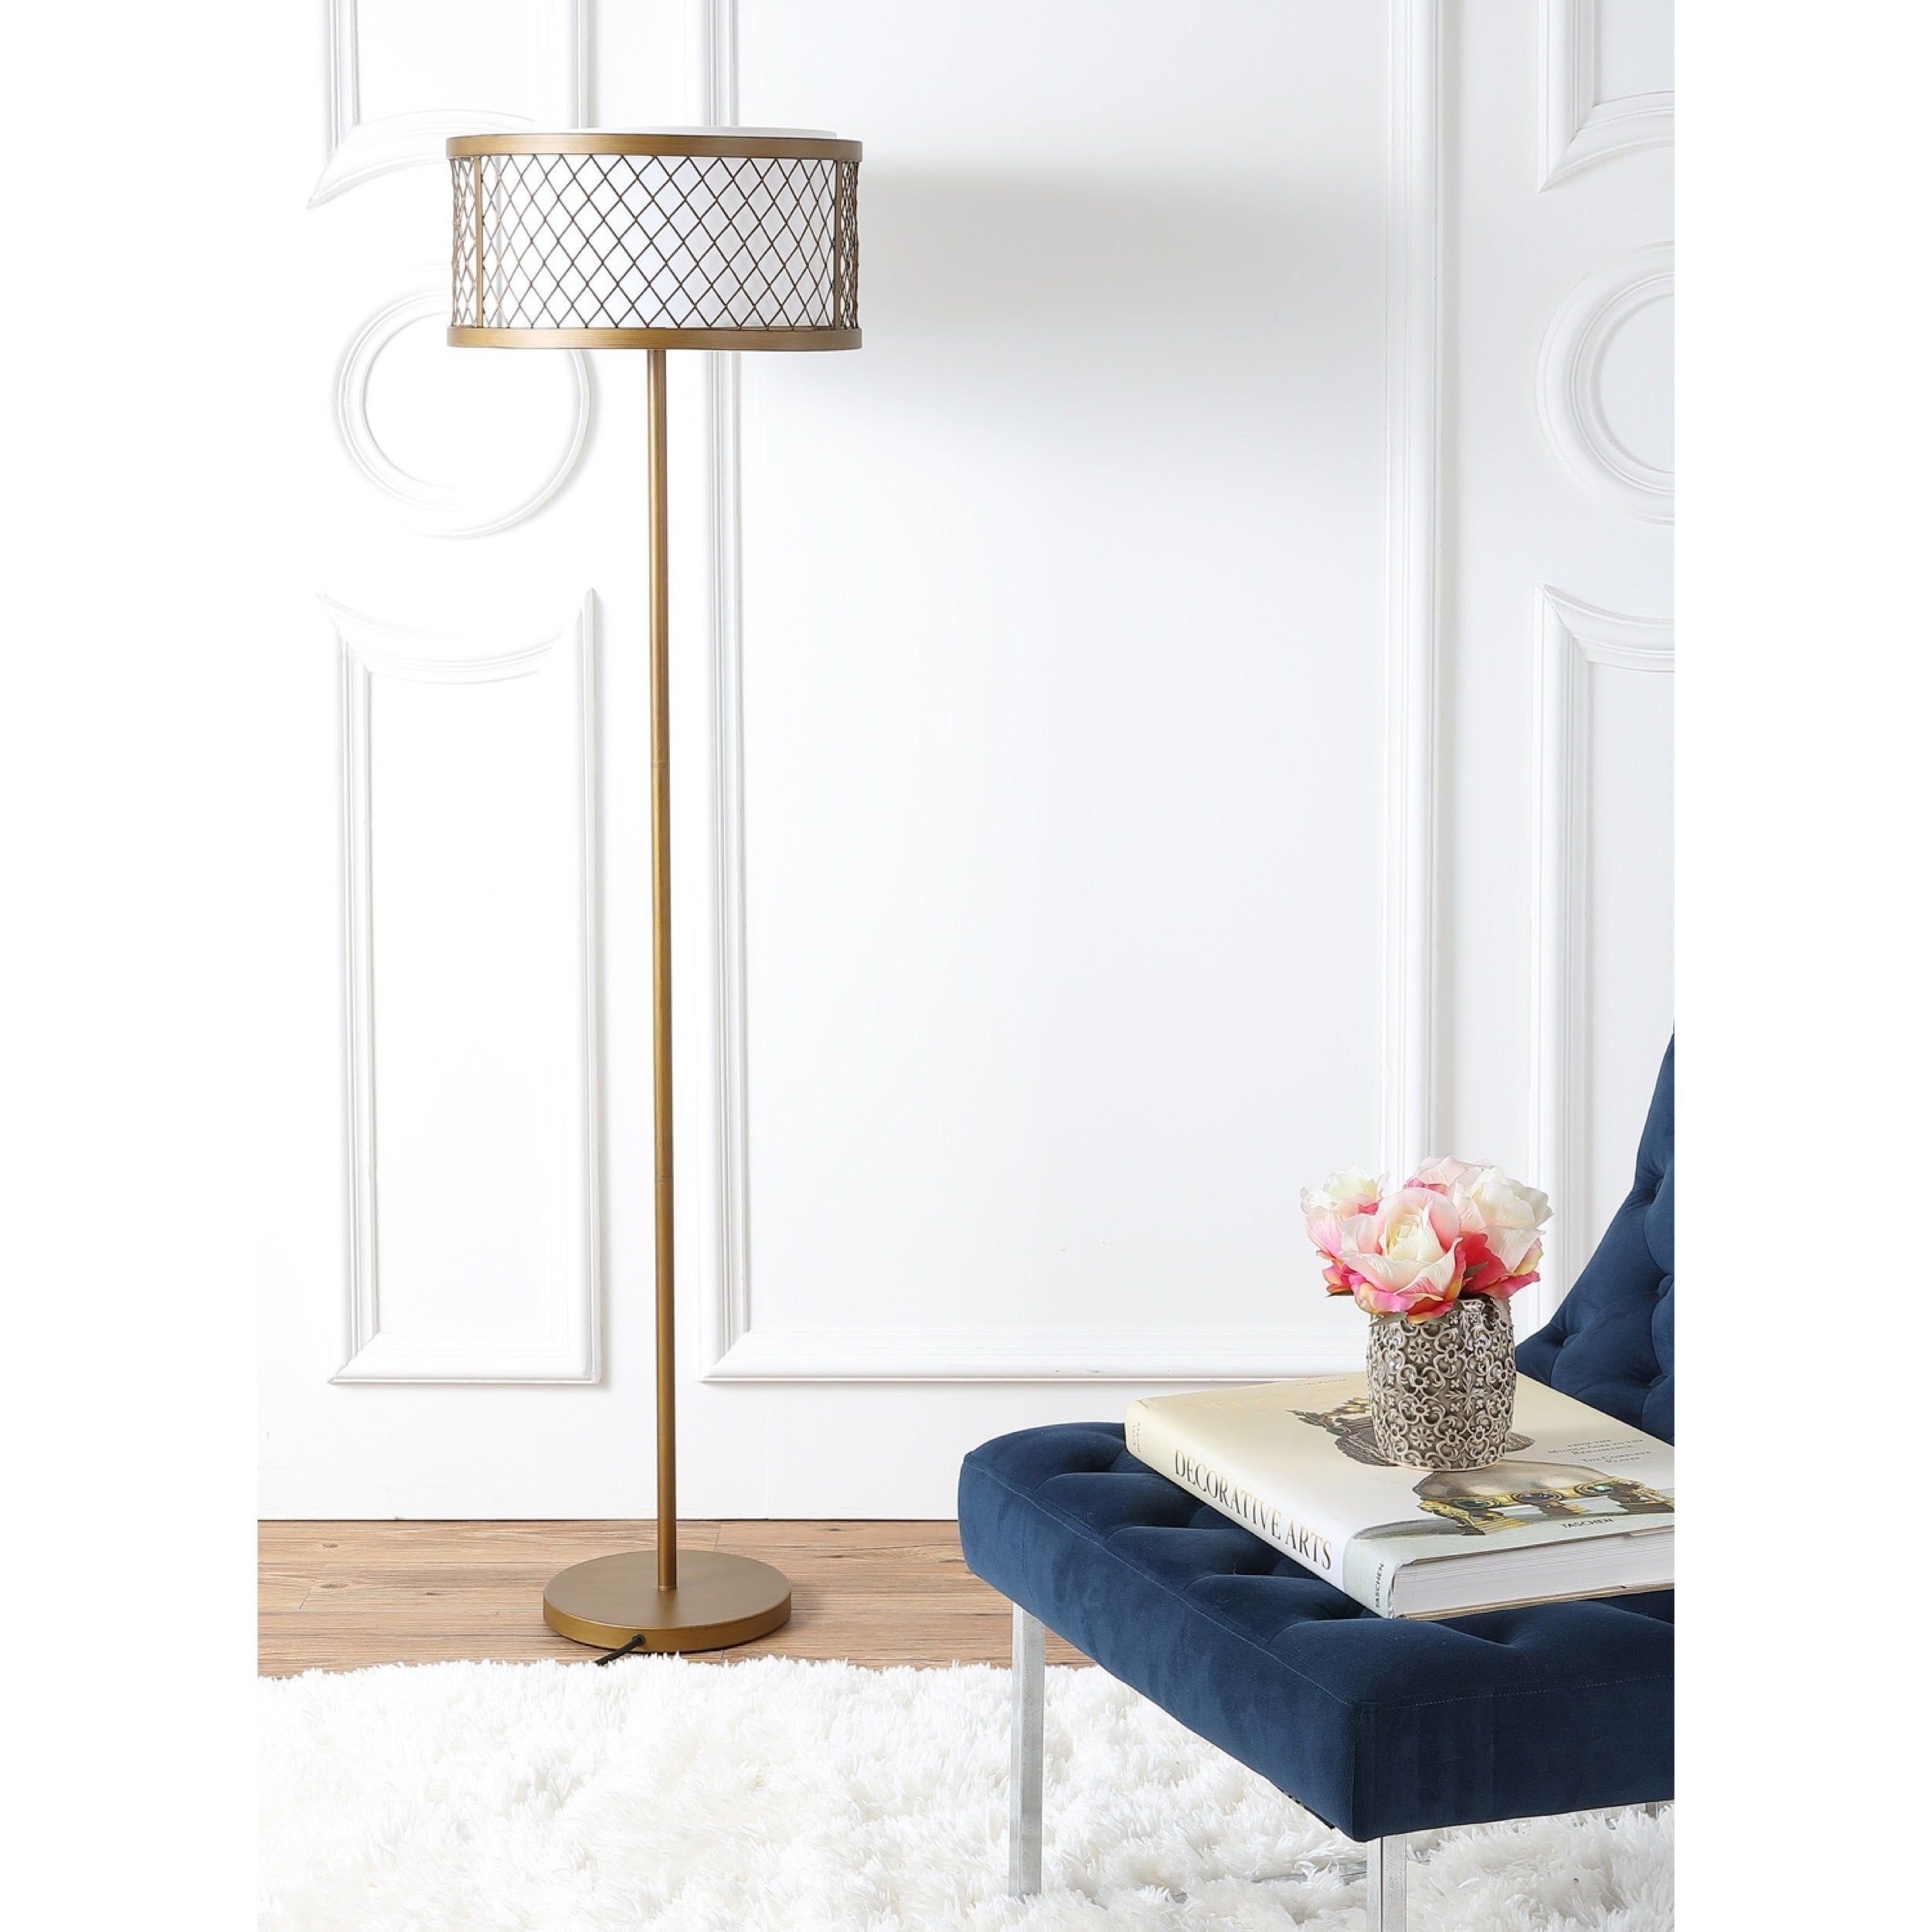 Safavieh Lighting 58 25 inch 2 light Evie Mesh Gold Floor Lamp